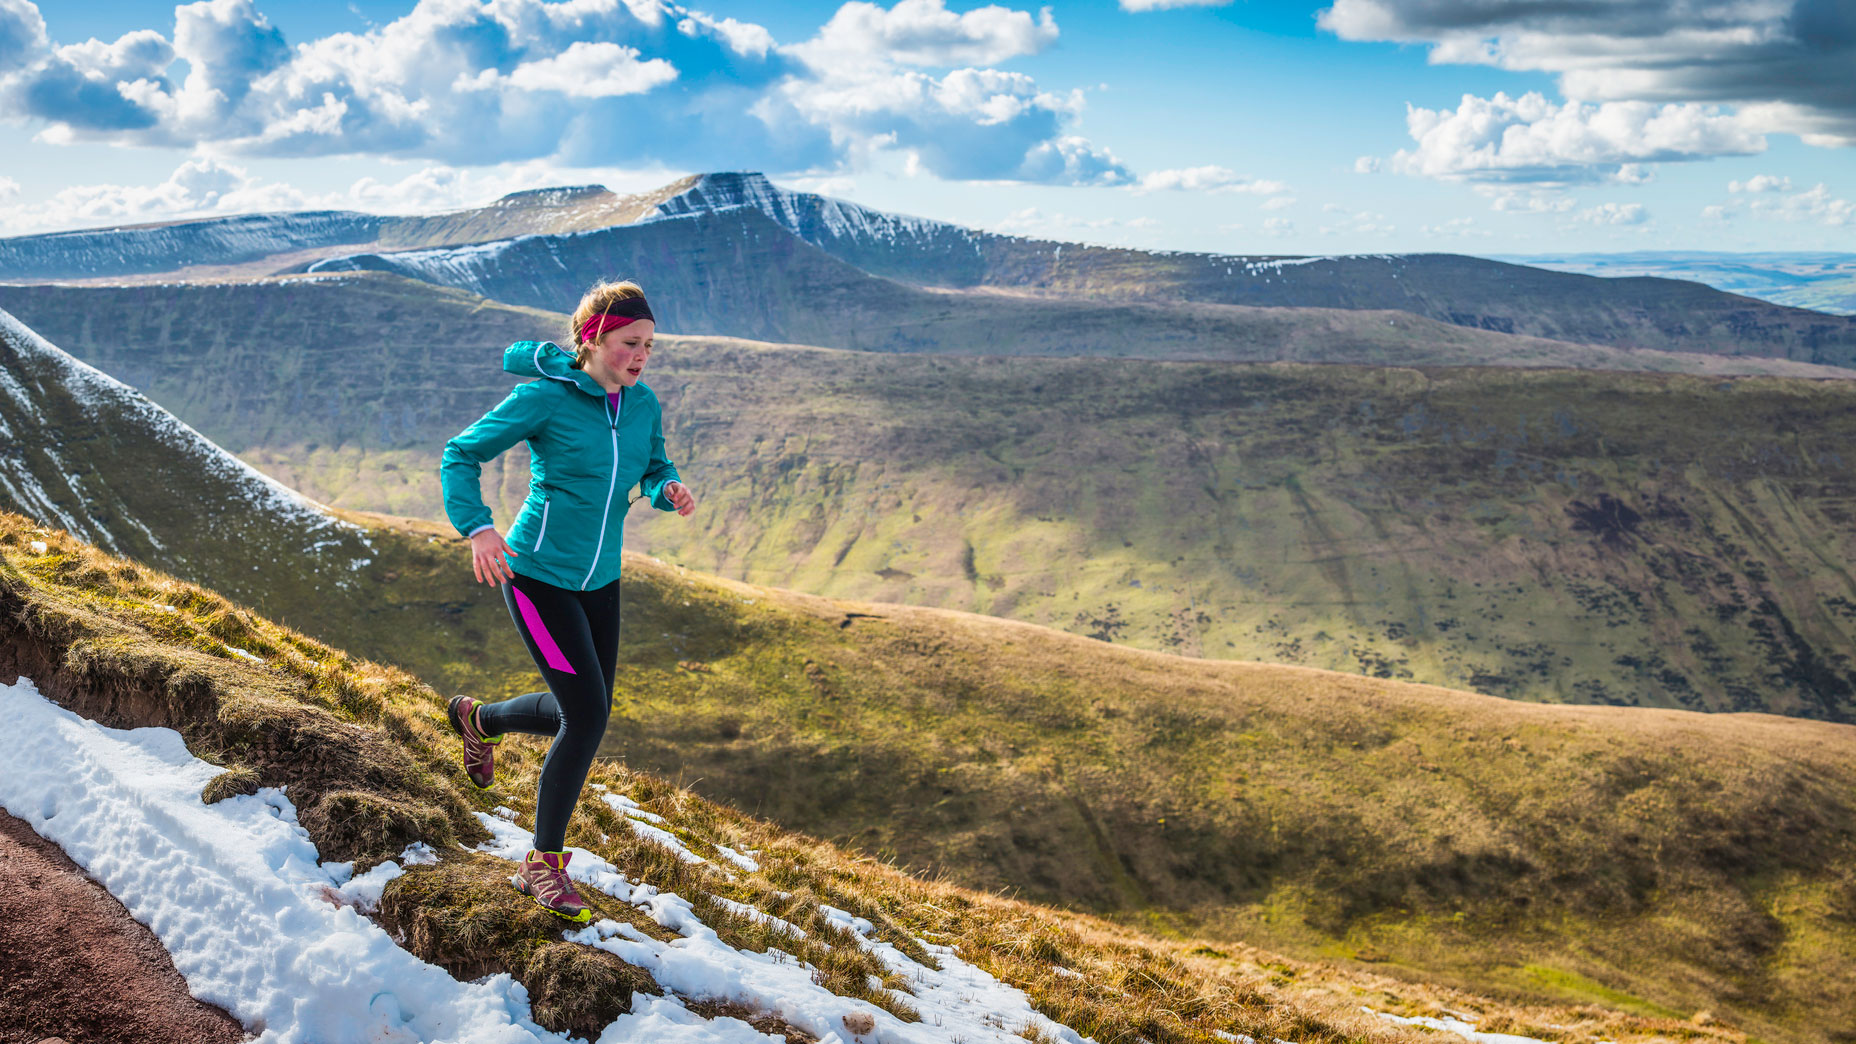 Trail-Running-Events-in-the-UK-_-5-of-the-Best-Woman-Trail-Running-in-the-Snow